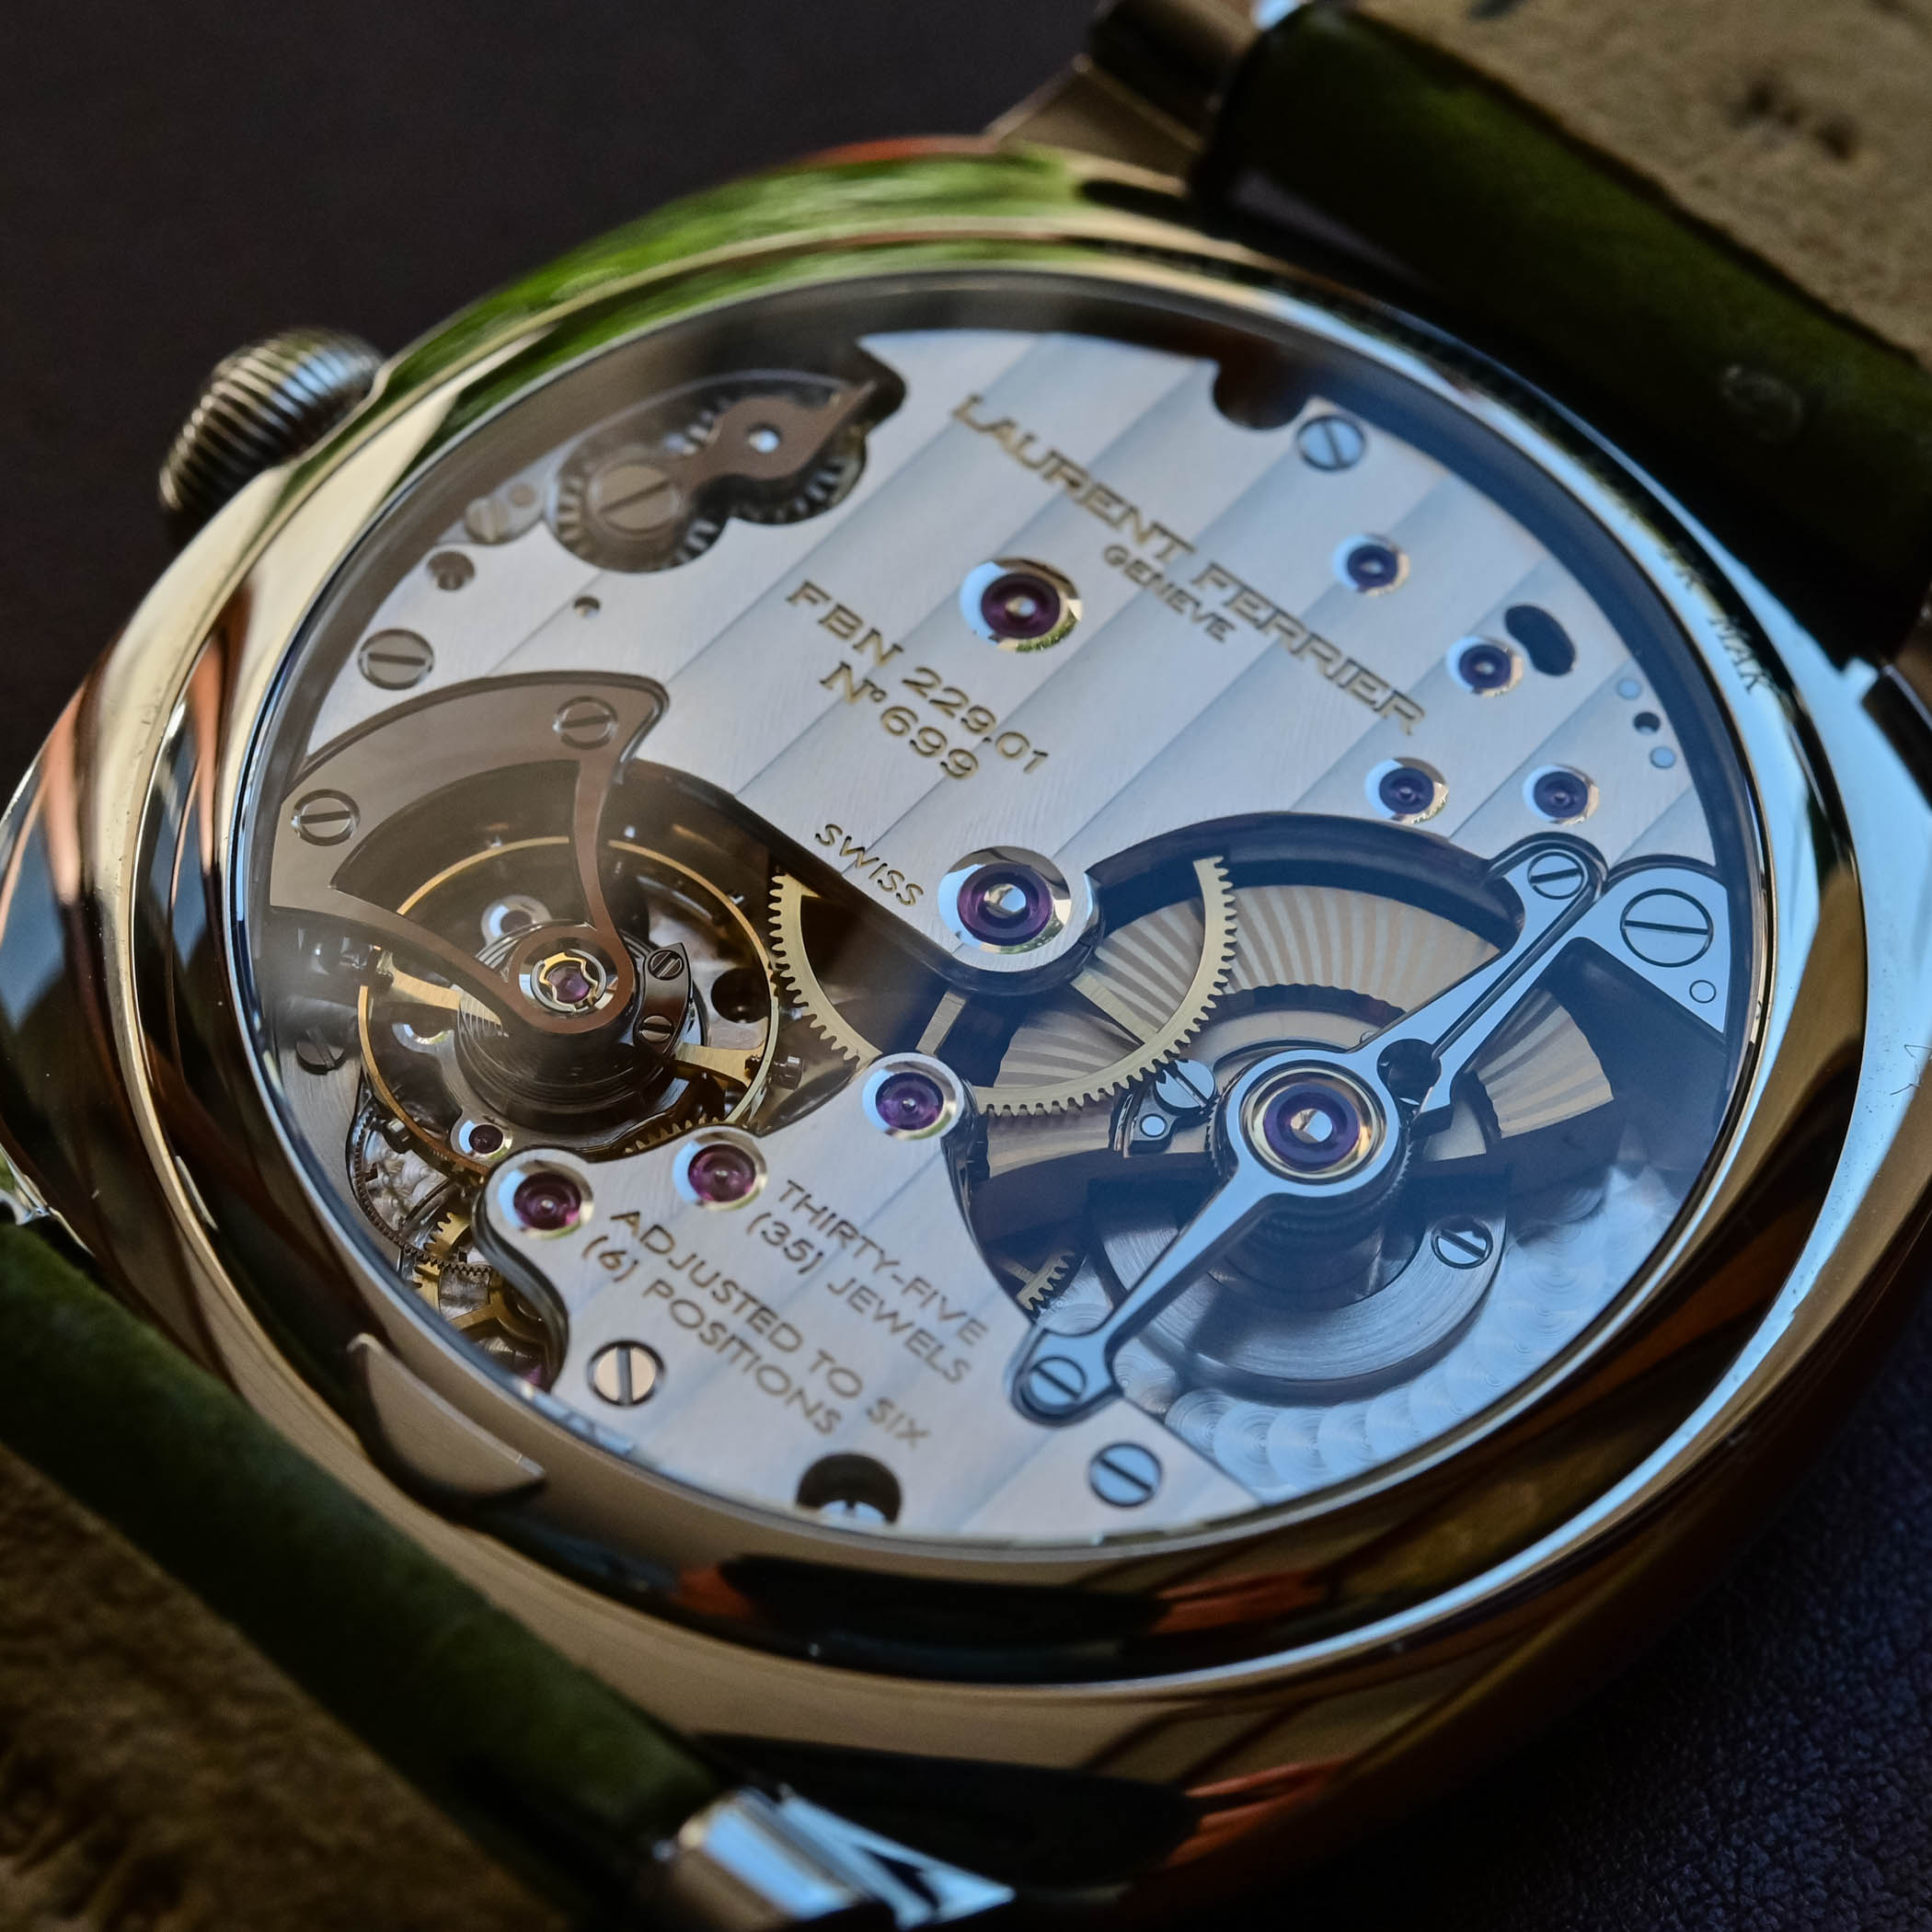 2021 Laurent Ferrier Square Micro-Rotor Retro Watches - Hands-on - 2